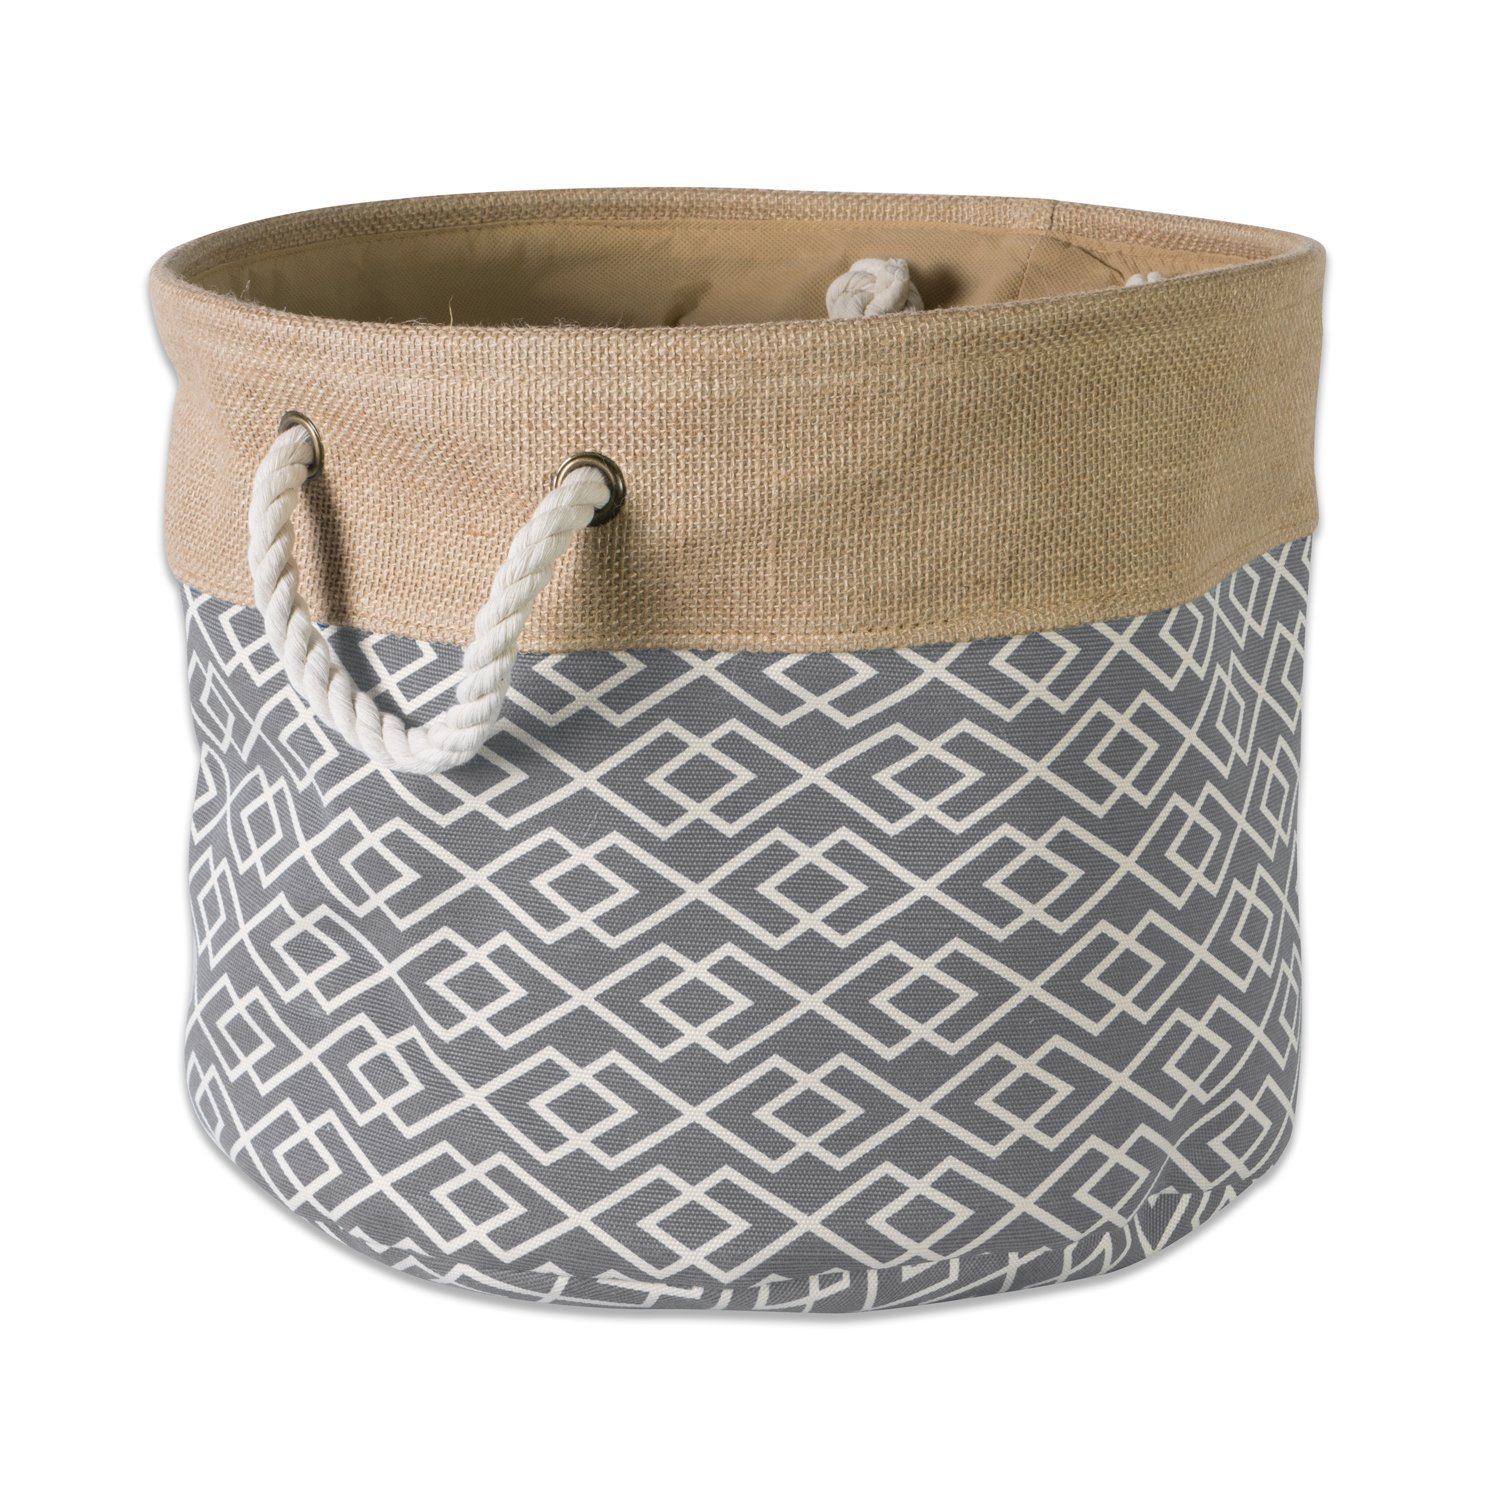 DII Collapsible Burlap Storage Basket or Bin with Durable Cotton Handles, Home Organizational Solution for Office, Bedroom, Closet, Toys, Laundry (Small Round - 12x9), Diamond Gray